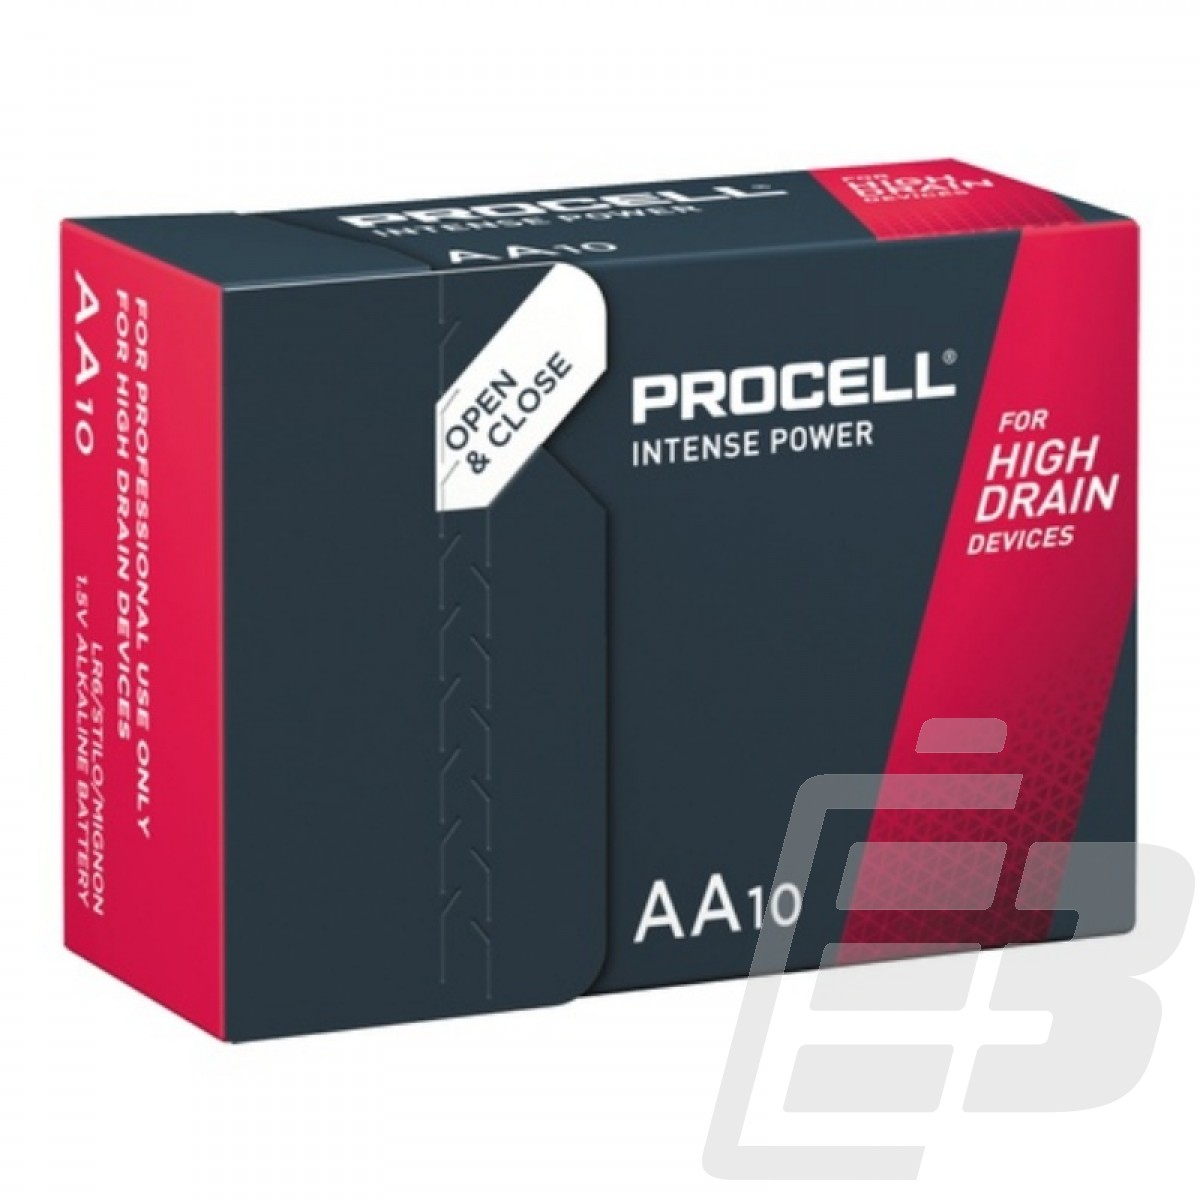 duracell indrustrial AAA_1